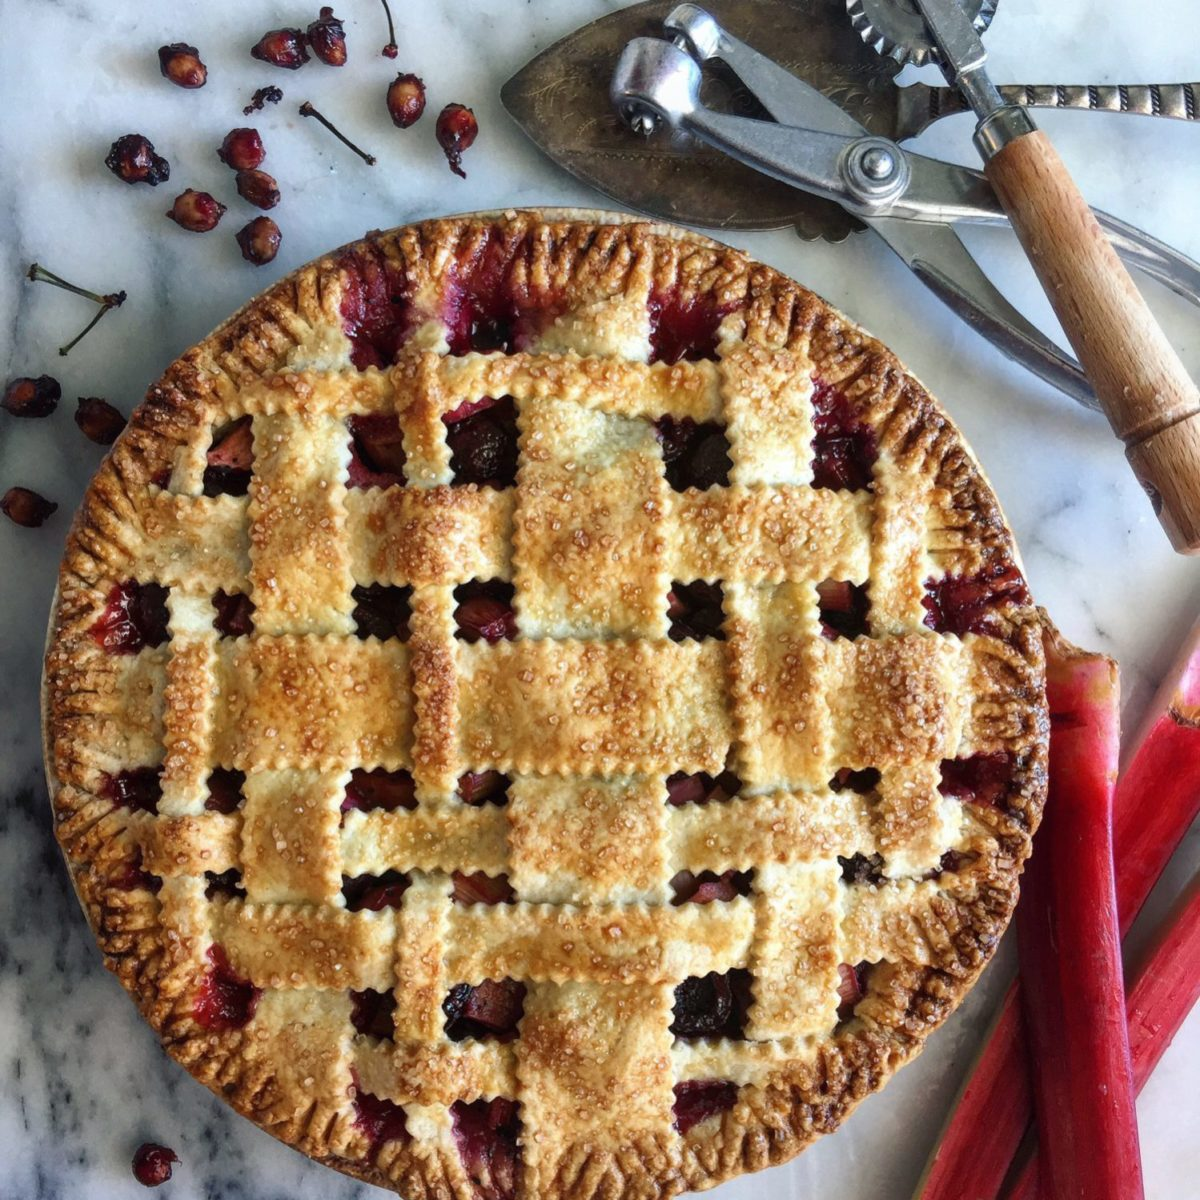 Cherry and Rhubarb Pie with Urfa Biber and Allspice